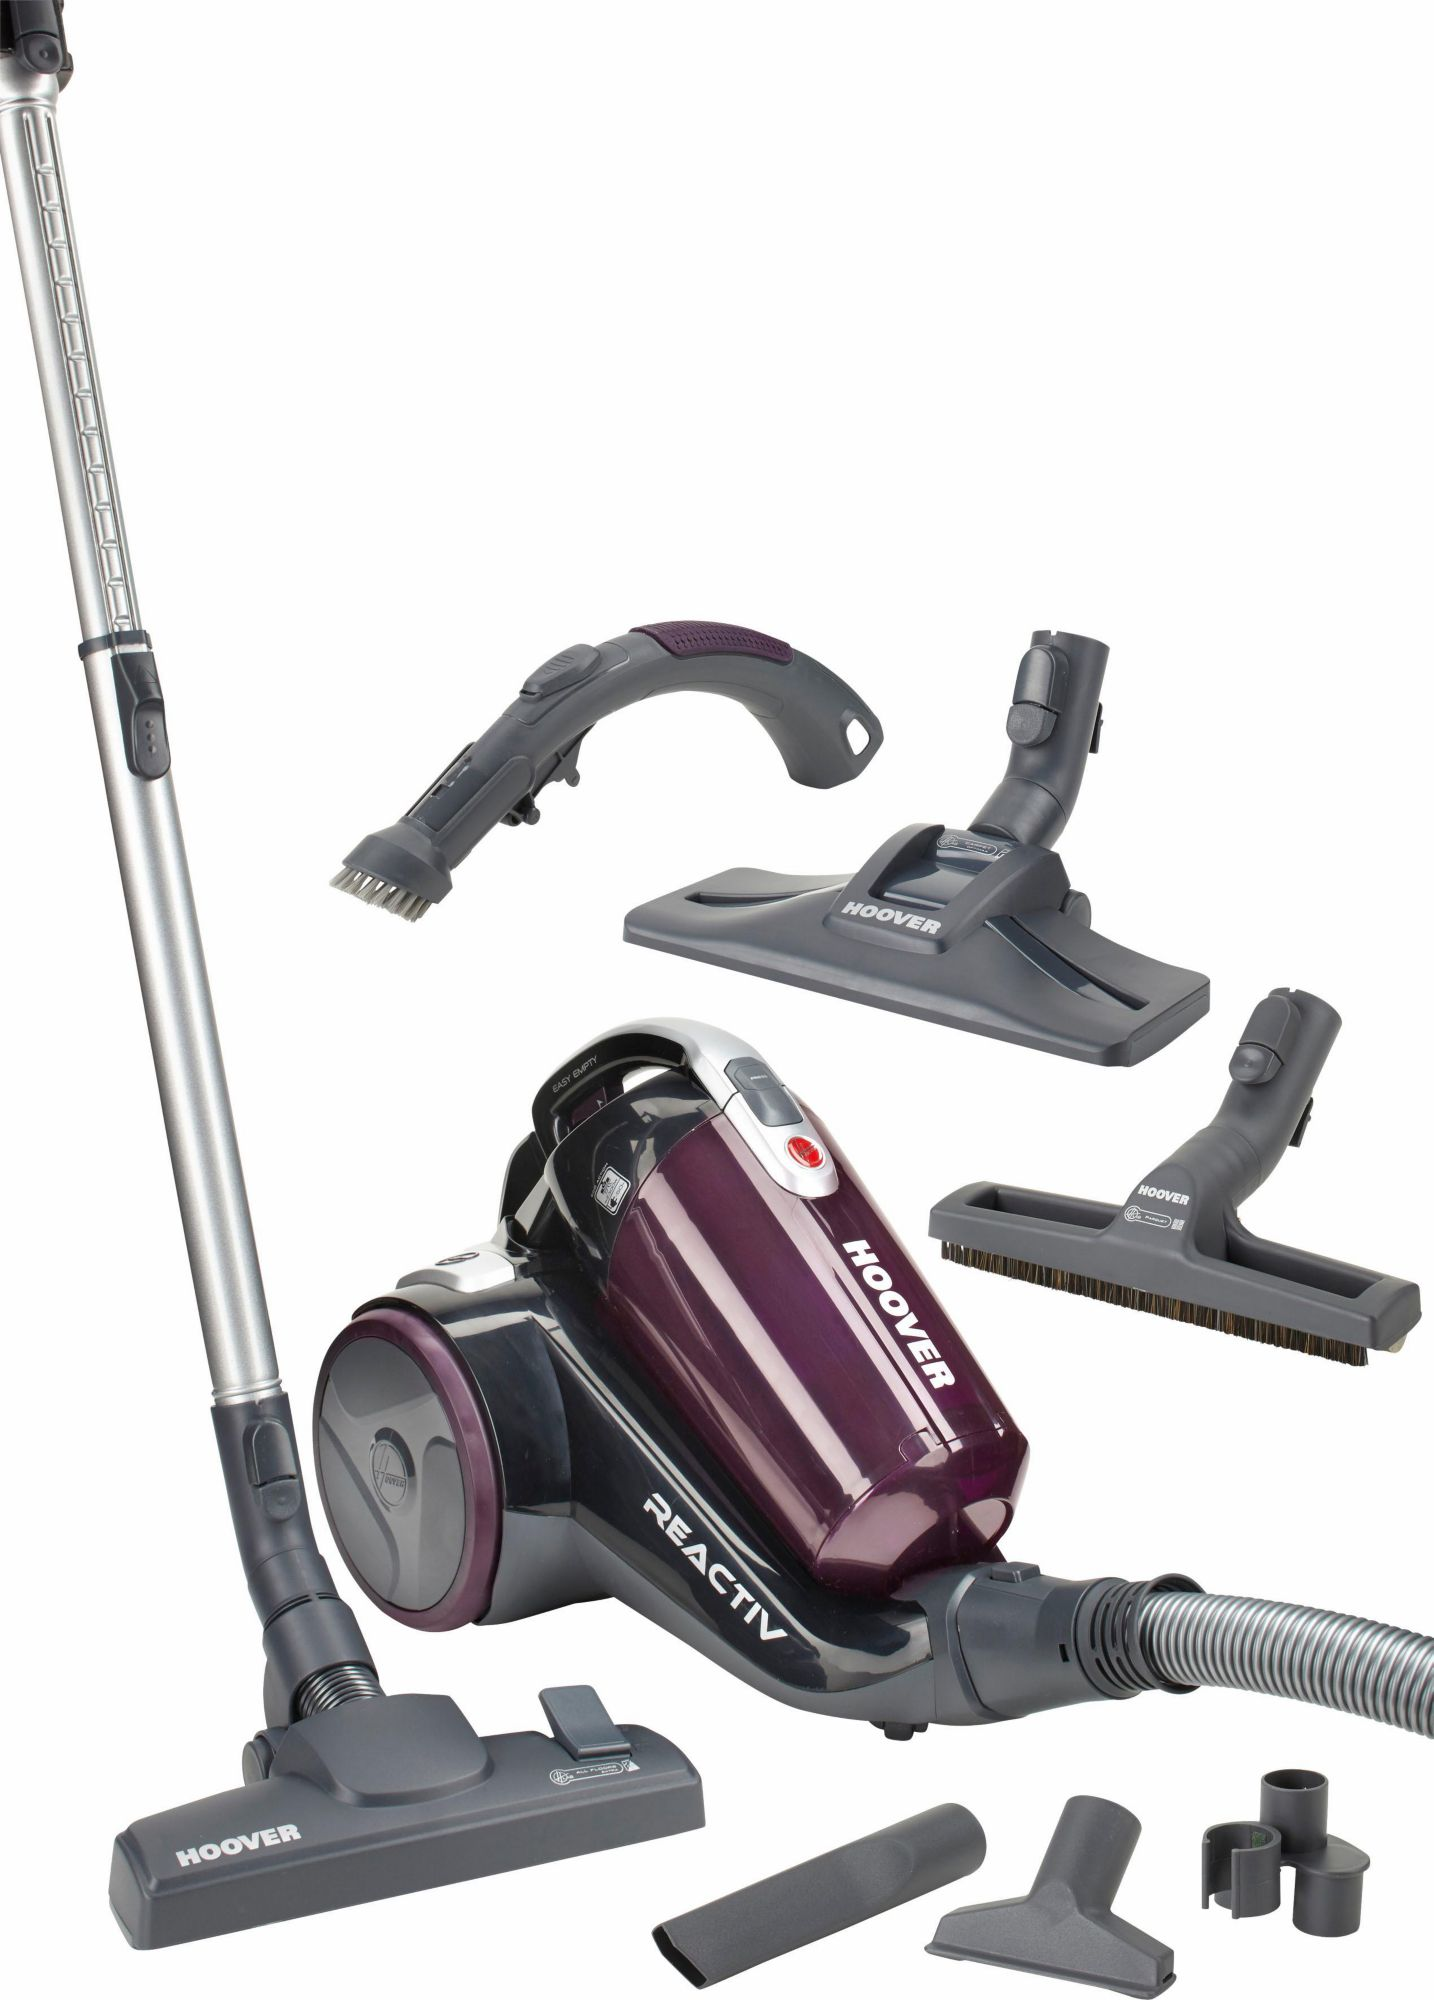 HOOVER Hoover Bodenstaubsauger Reactiv RC81_RC16, ohne Staubbeutel, Energieklasse: A